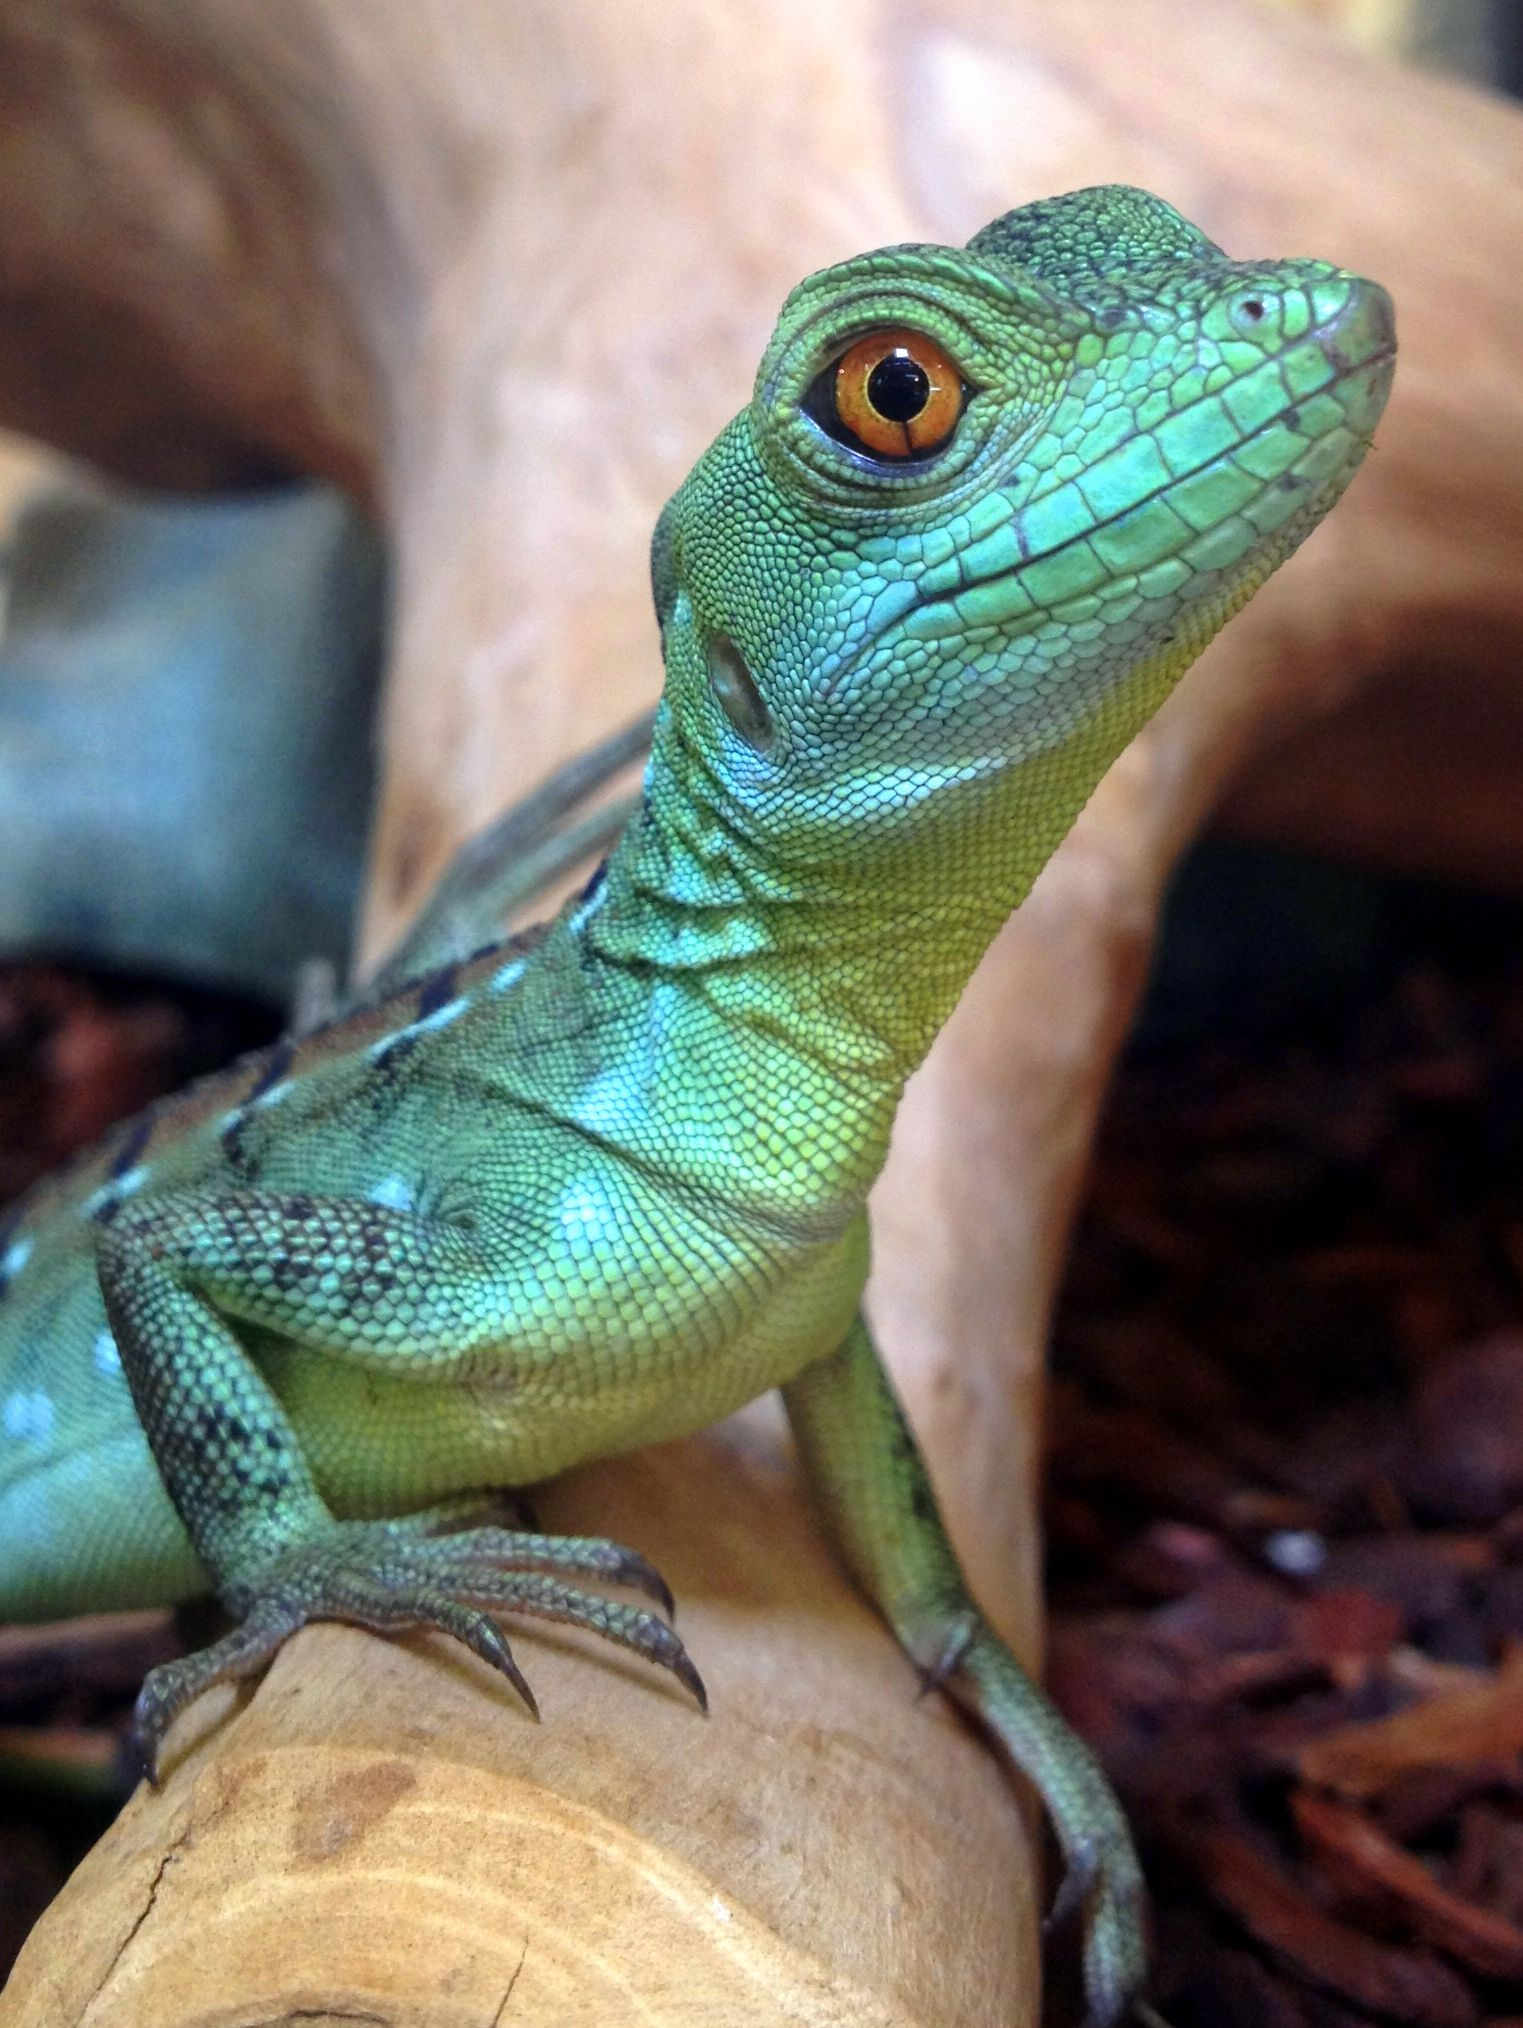 Lizard Tells Us It Is Time To Sit And Soak Up The Energy